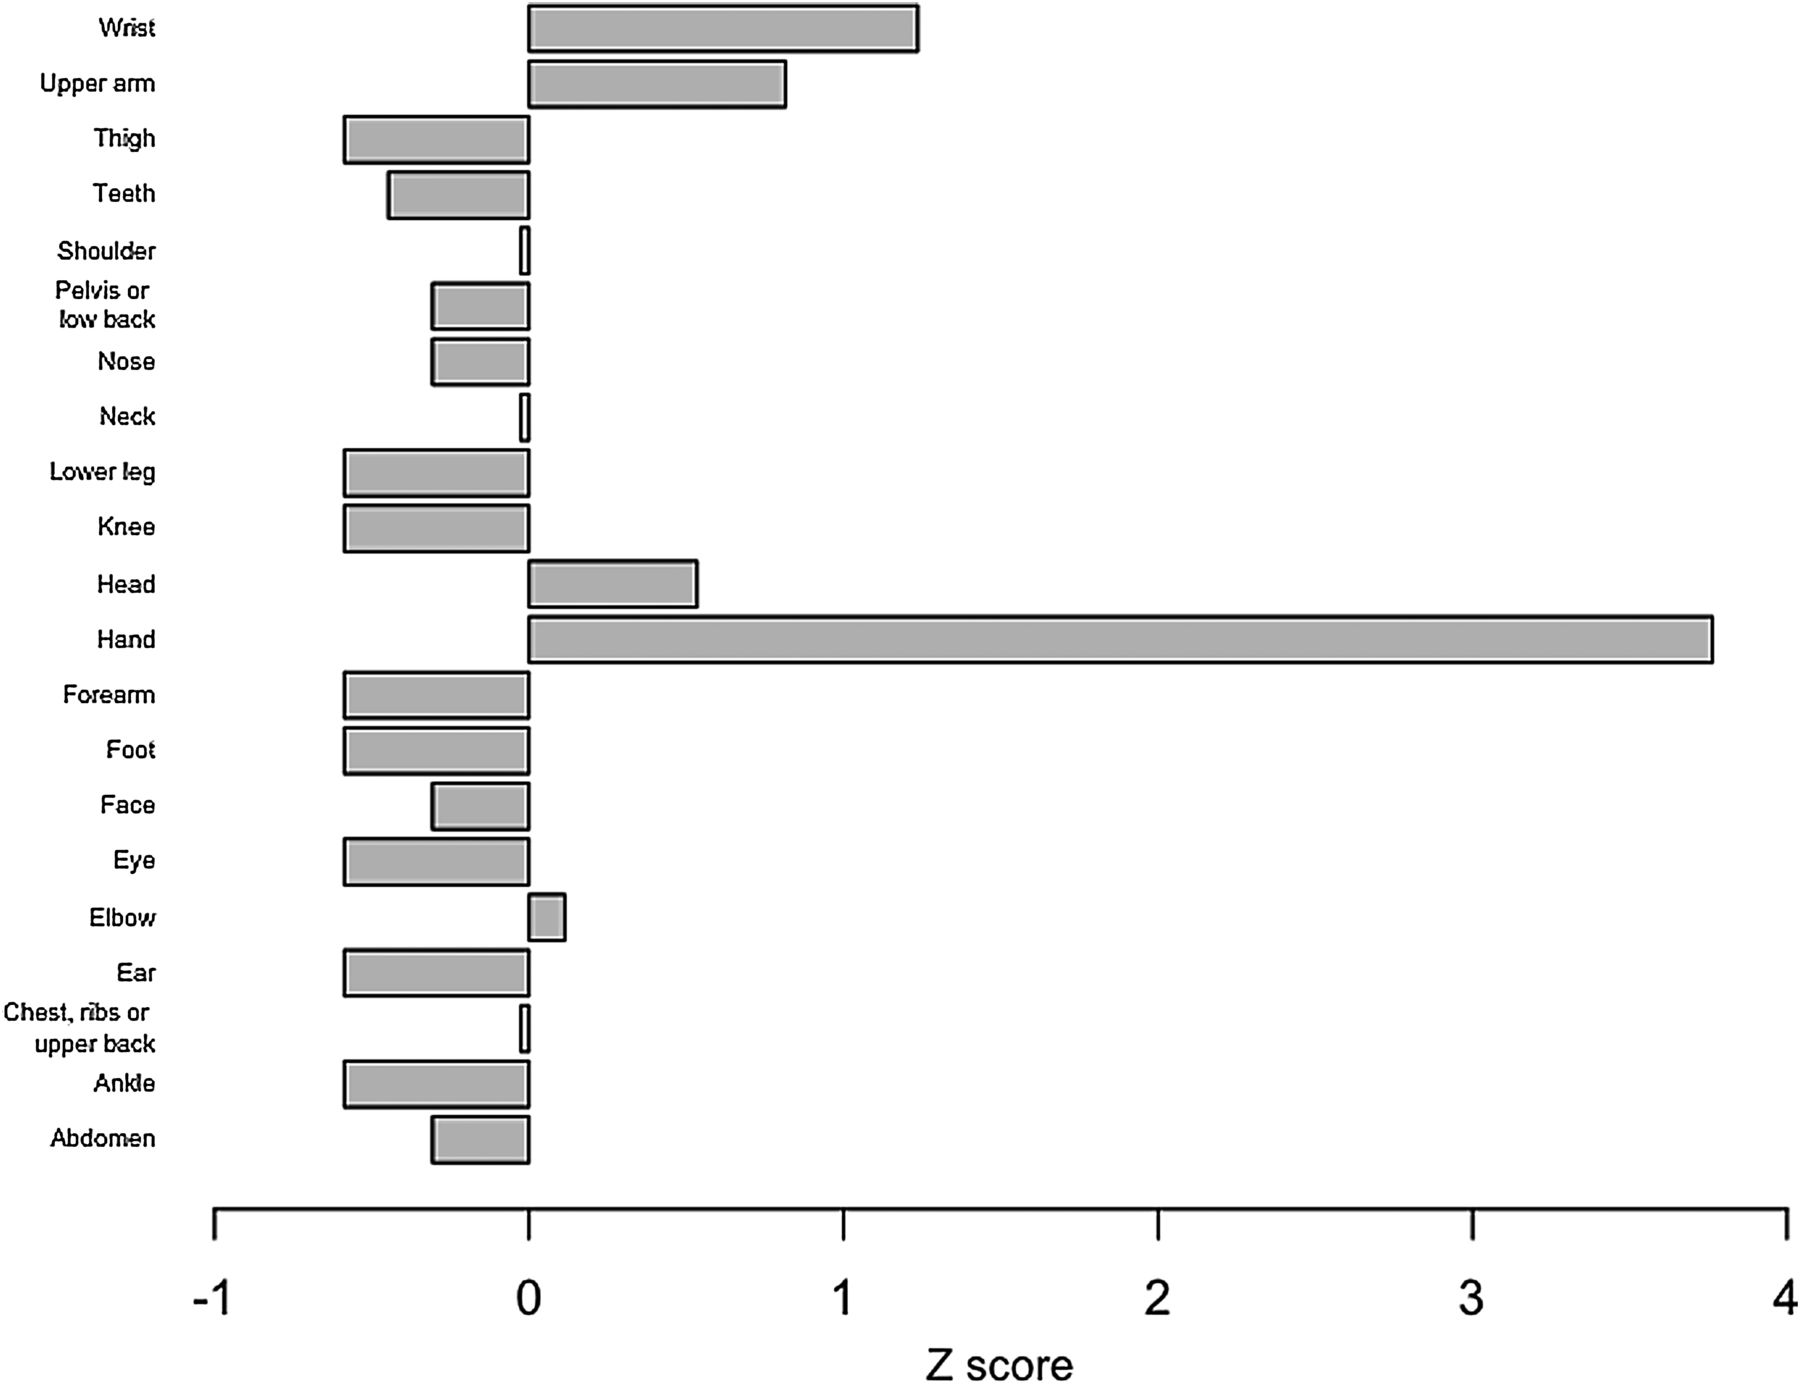 Boxing injury epidemiology in the Great Britain team: a 5